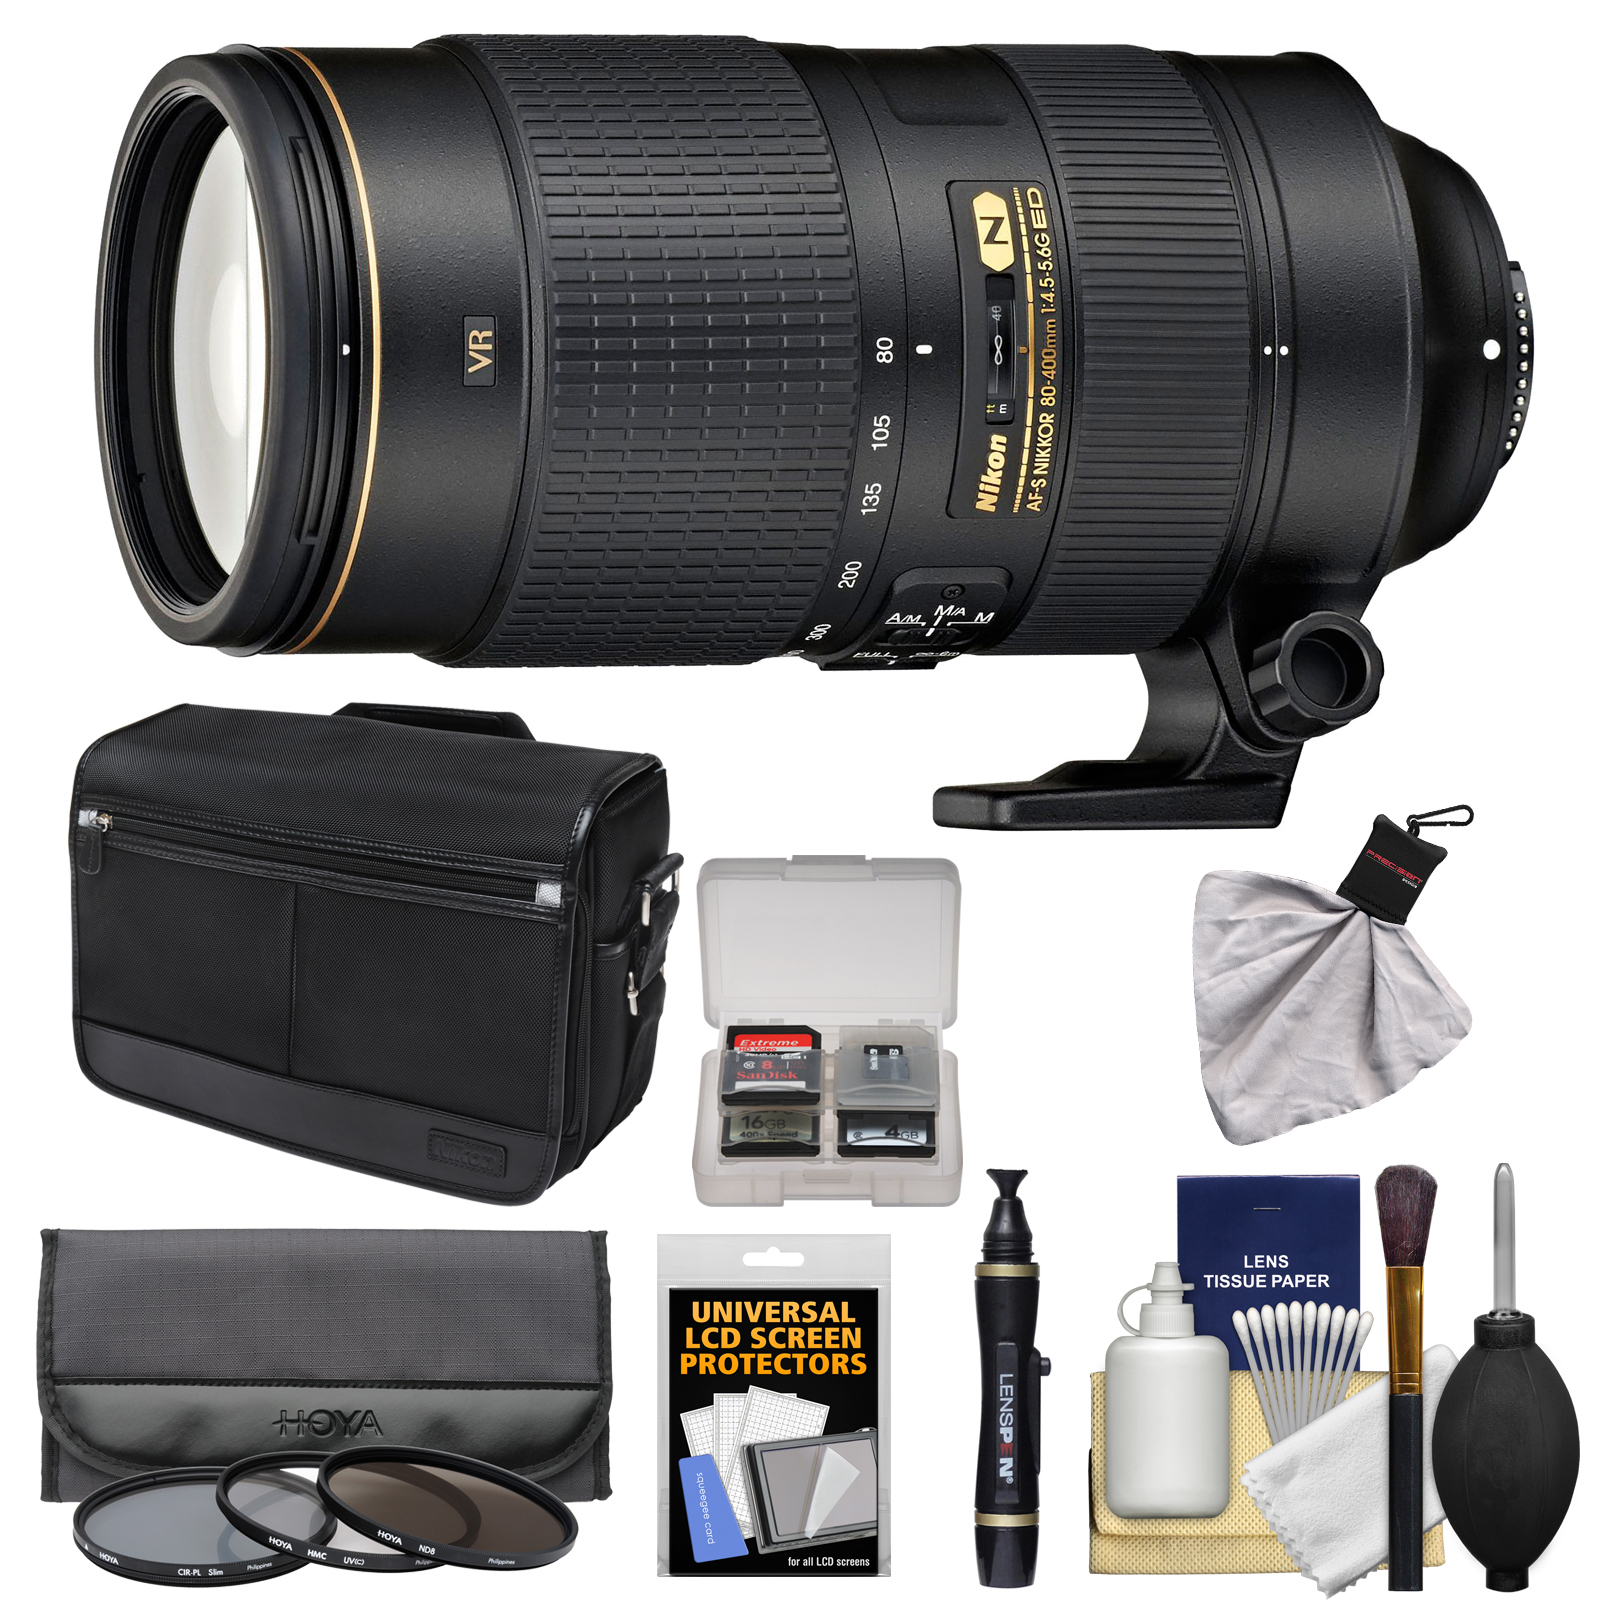 Nikon 80-400mm f/4.5-5.6G VR AF-S ED Nikkor-Zoom Lens + Shoulder Bag + 3 Filters Kit for D3200, D3300, D5300, D5500, D7100, D7200, D750, D810 Camera